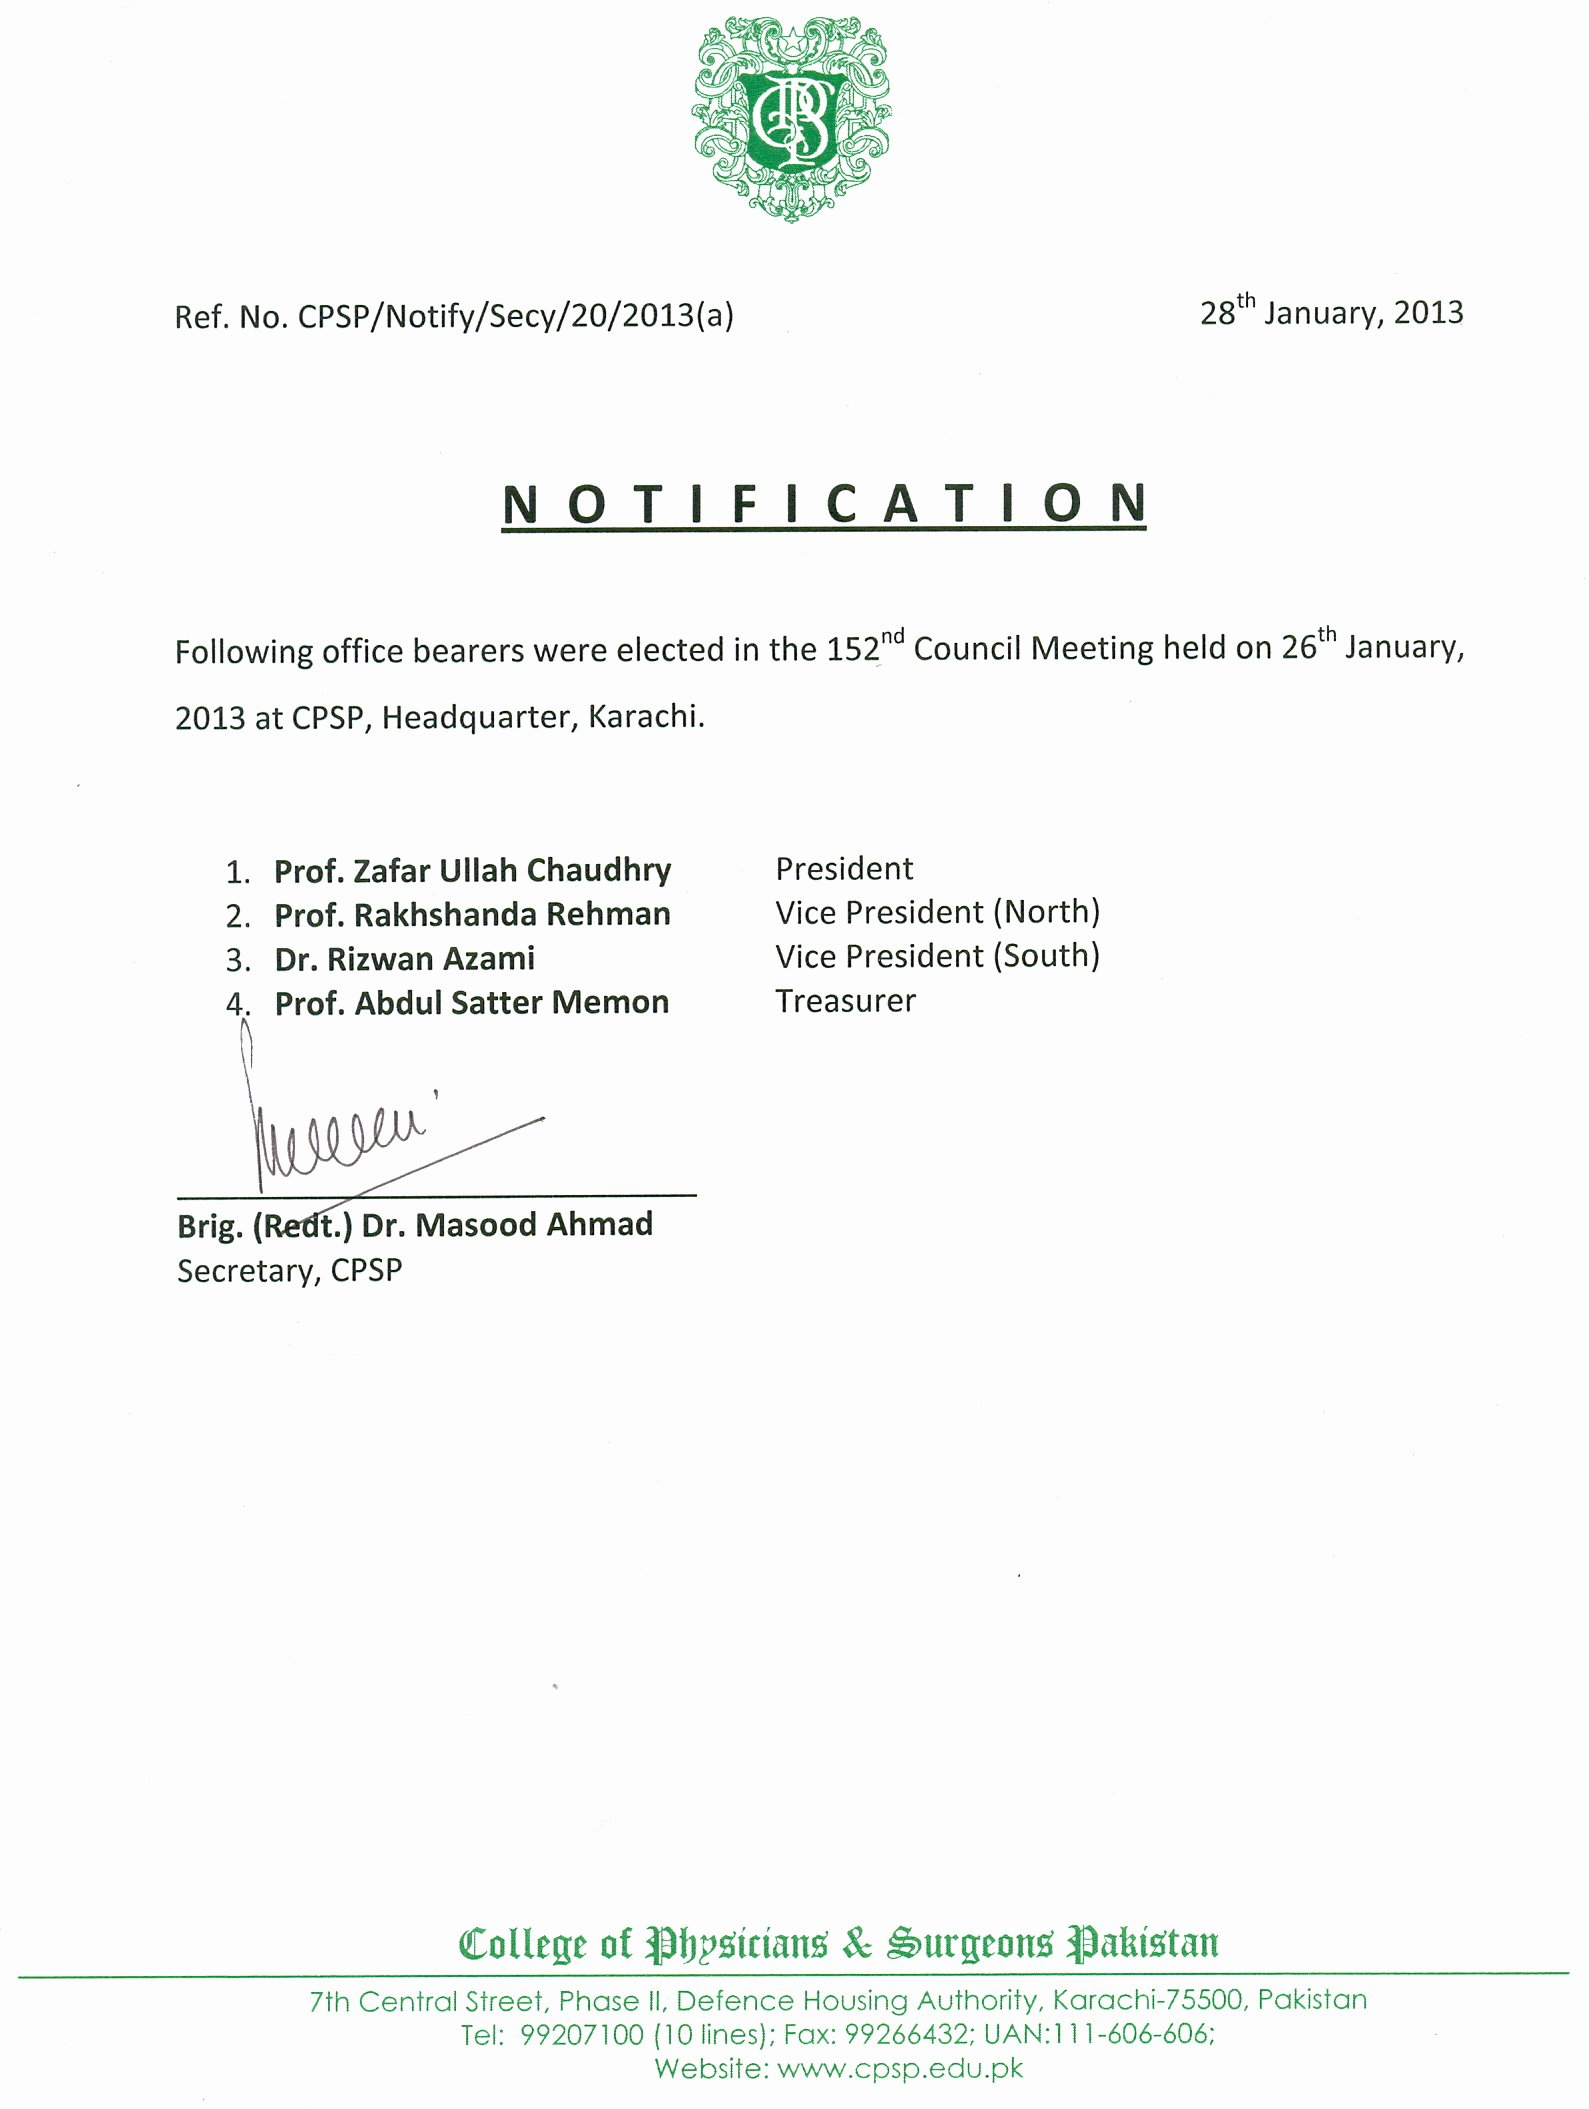 Uf Letter Of Recommendation Elegant College Of Physicians and Surgeons Pakistan